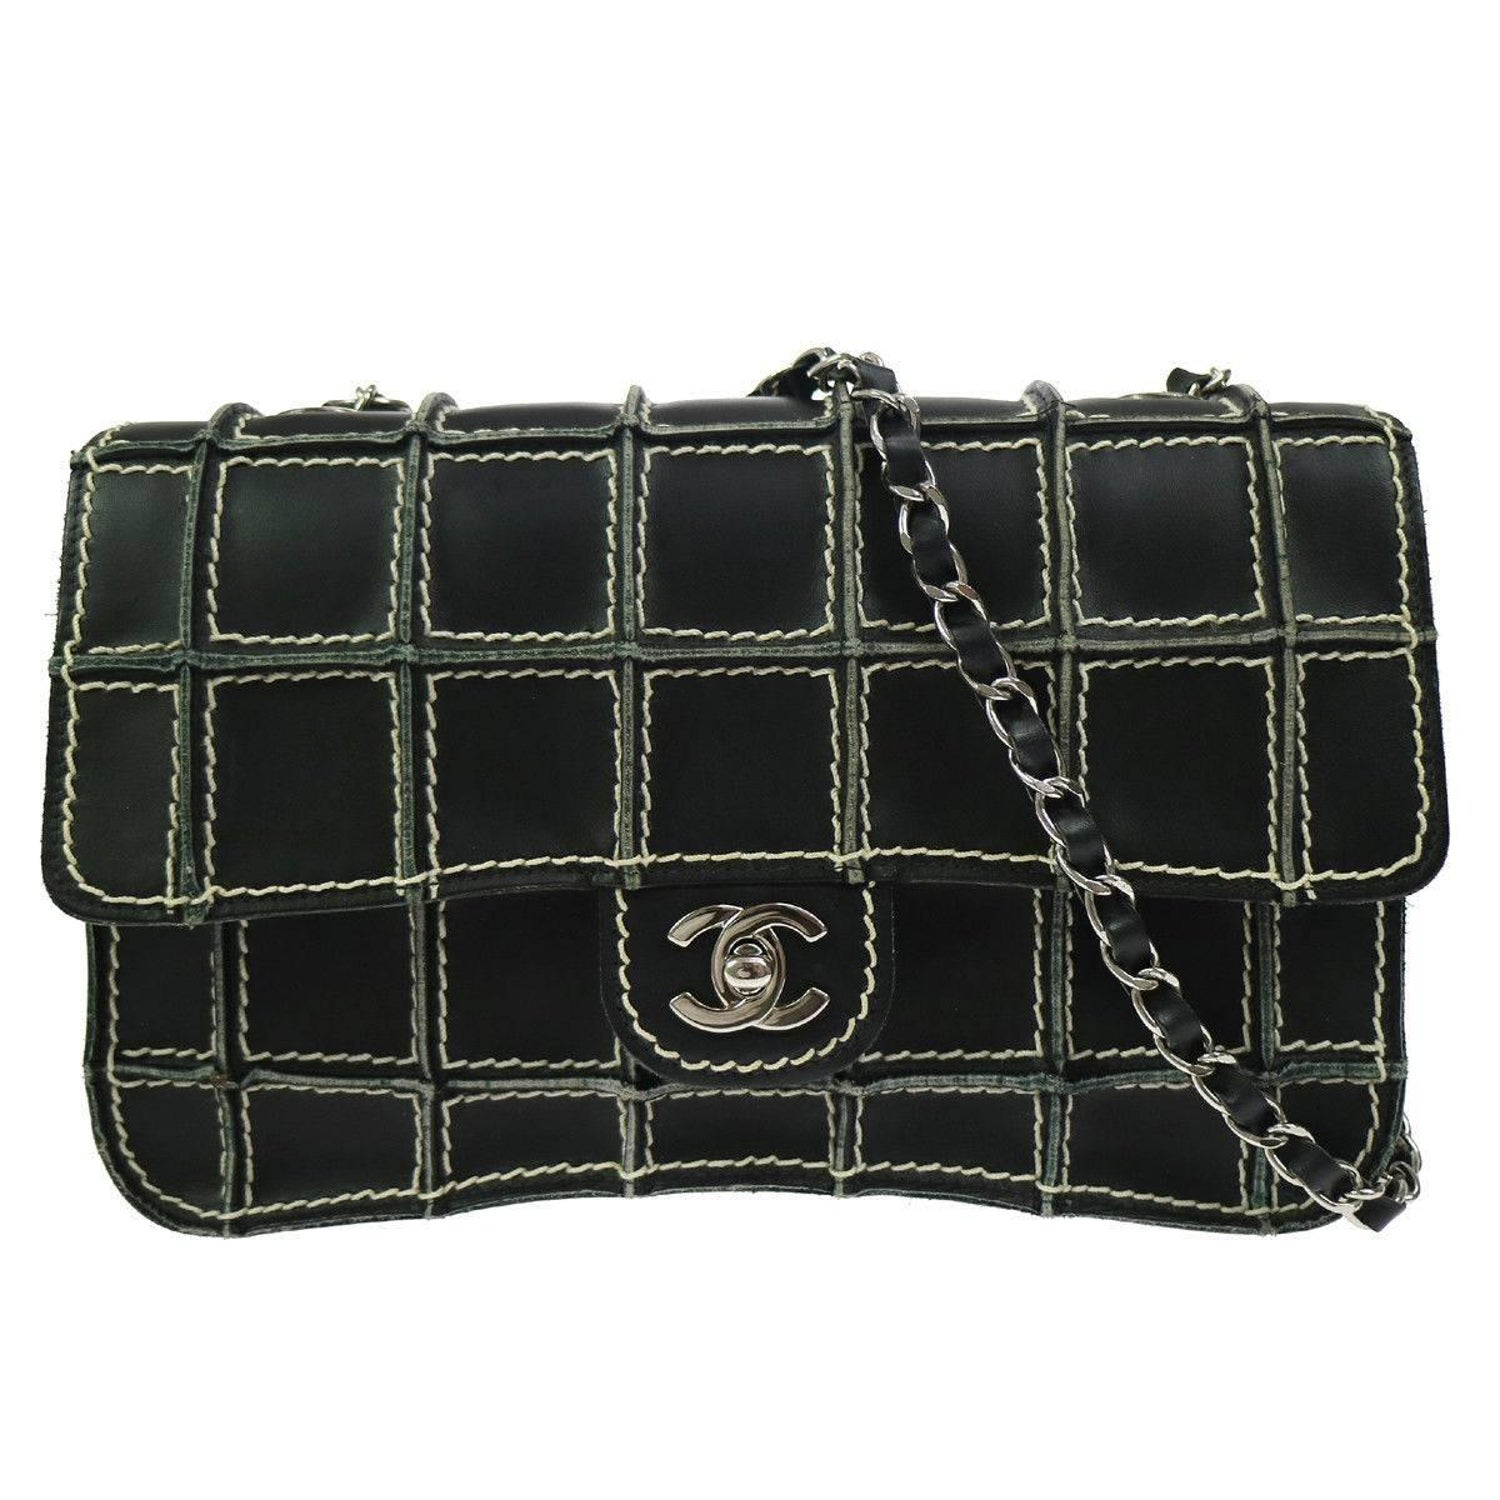 e5e4857ca7e4 Chanel Black Leather Whip Stitch Silver Evening Medium Shoulder Flap Bag  For Sale at 1stdibs